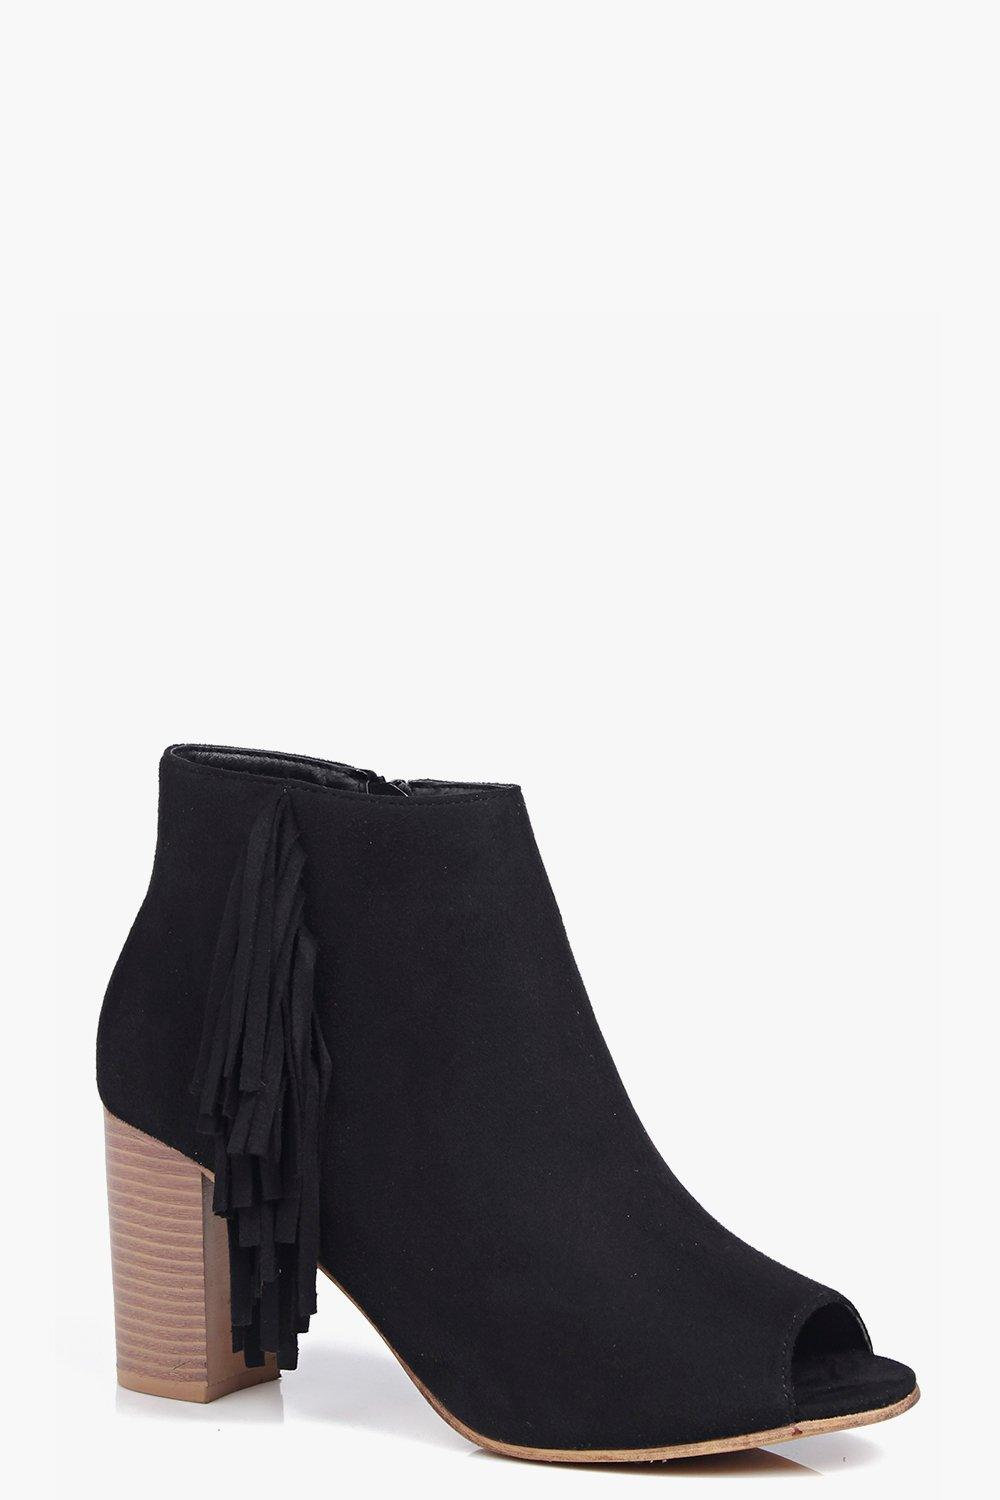 Lacey Peeptoe Fringe Trim Summer Boot